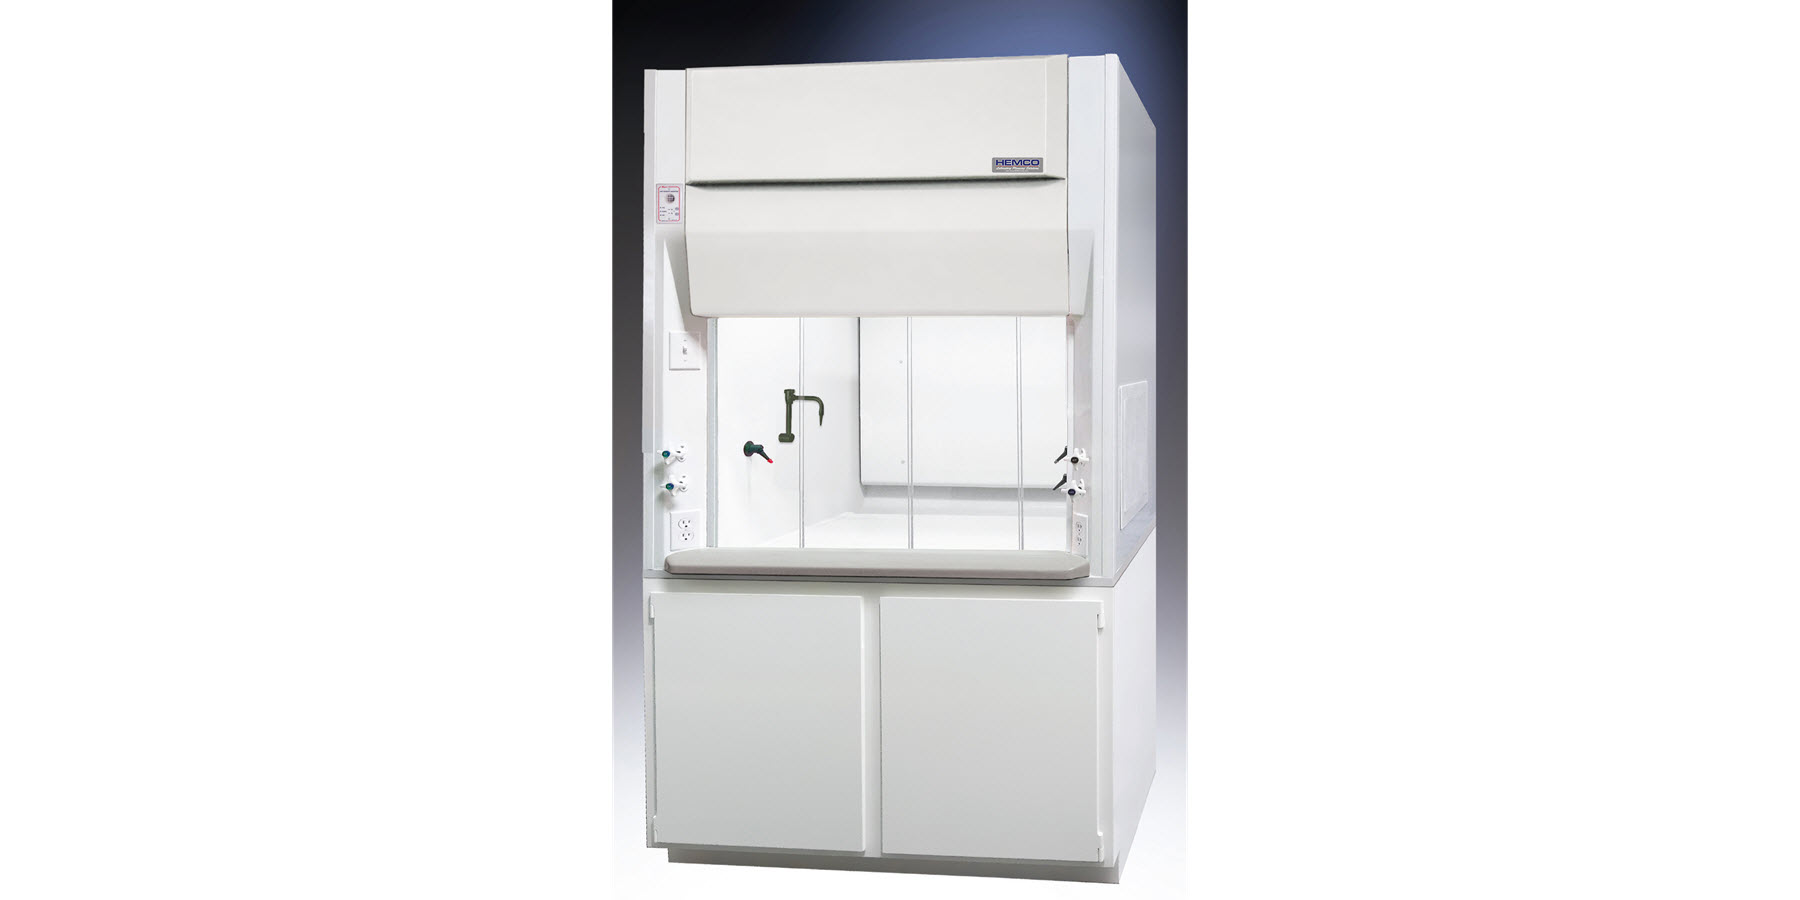 Polypro Trace Metal Fume Hoods